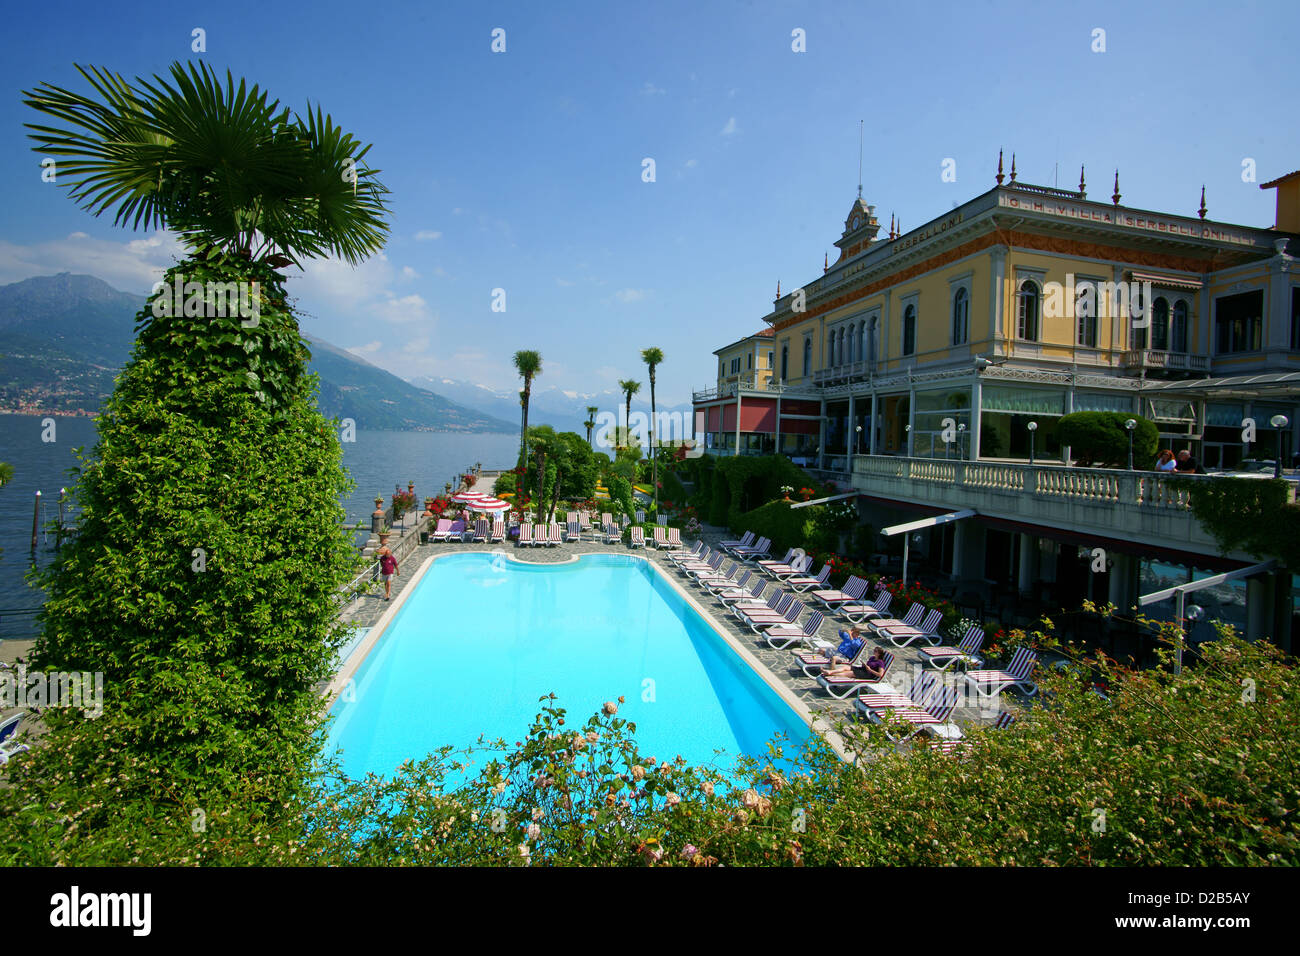 Bellagio Hotel Swimming Pool Lke Water View Moutain Comer Stock Photo Royalty Free